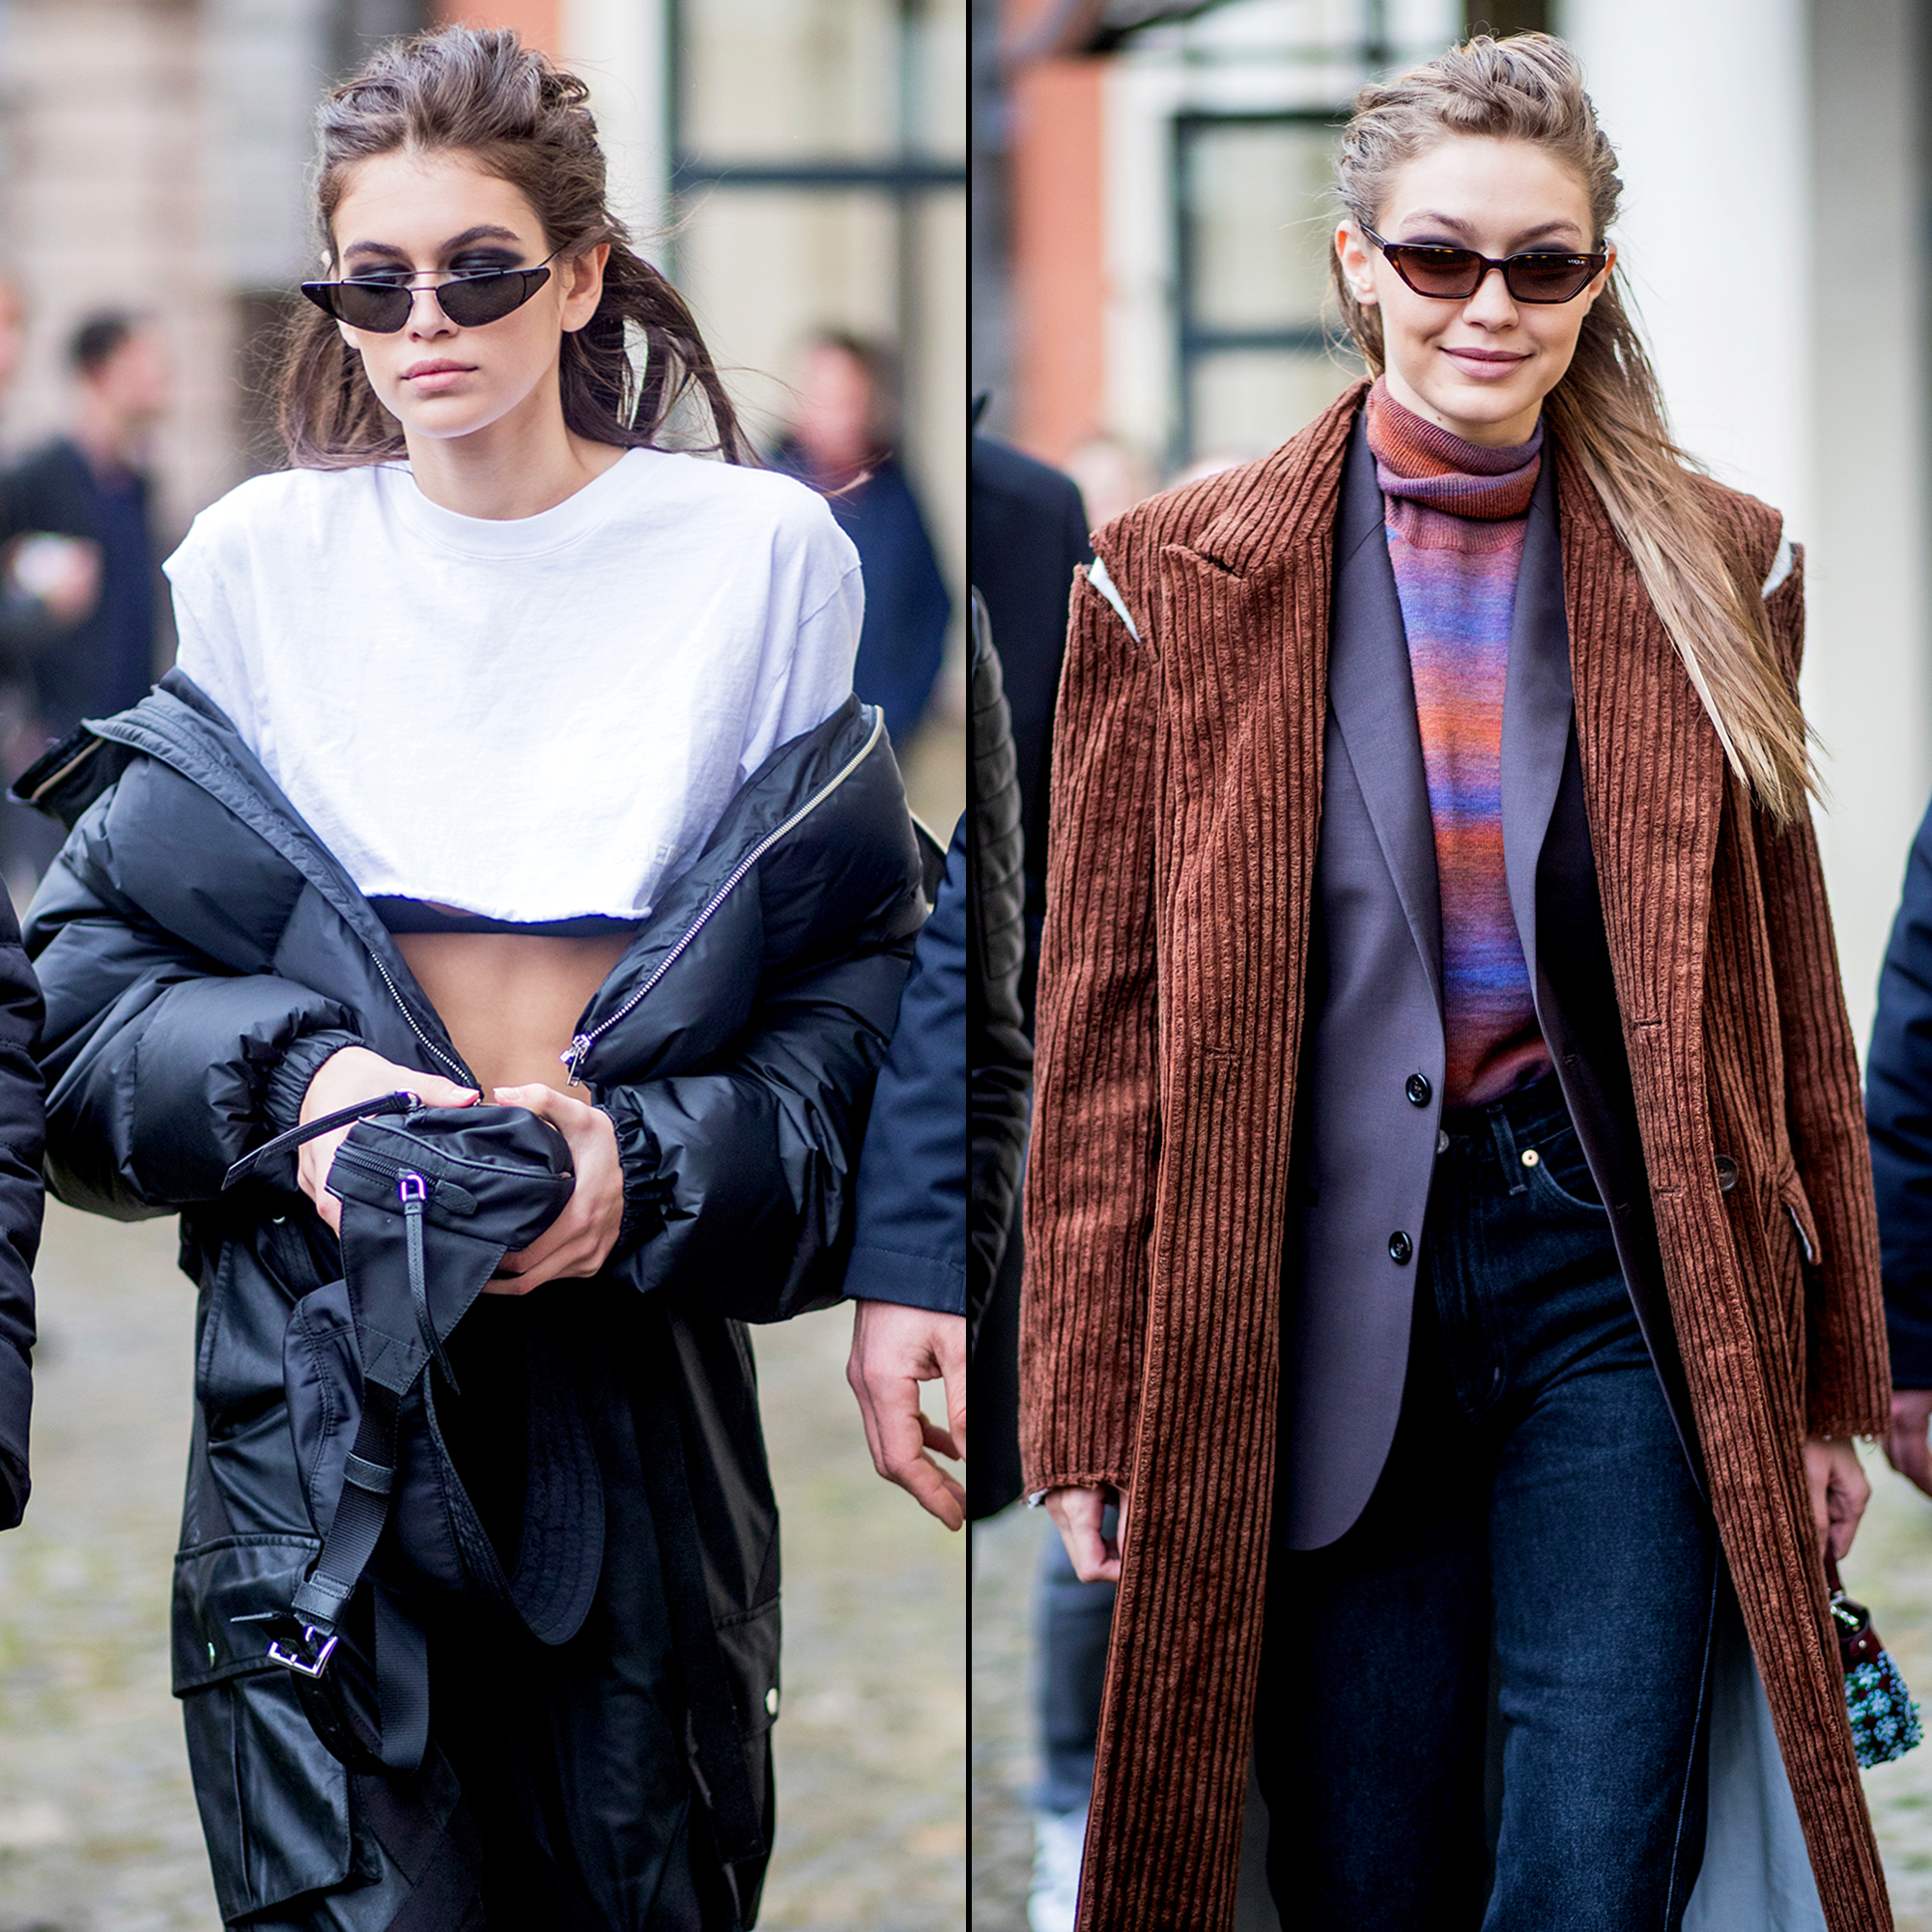 Kaia Gerber and Gigi Hadid step out during Milan Fashion Week Fall/Winter 2018/19 on February 22, 2018 in Milan, Italy.